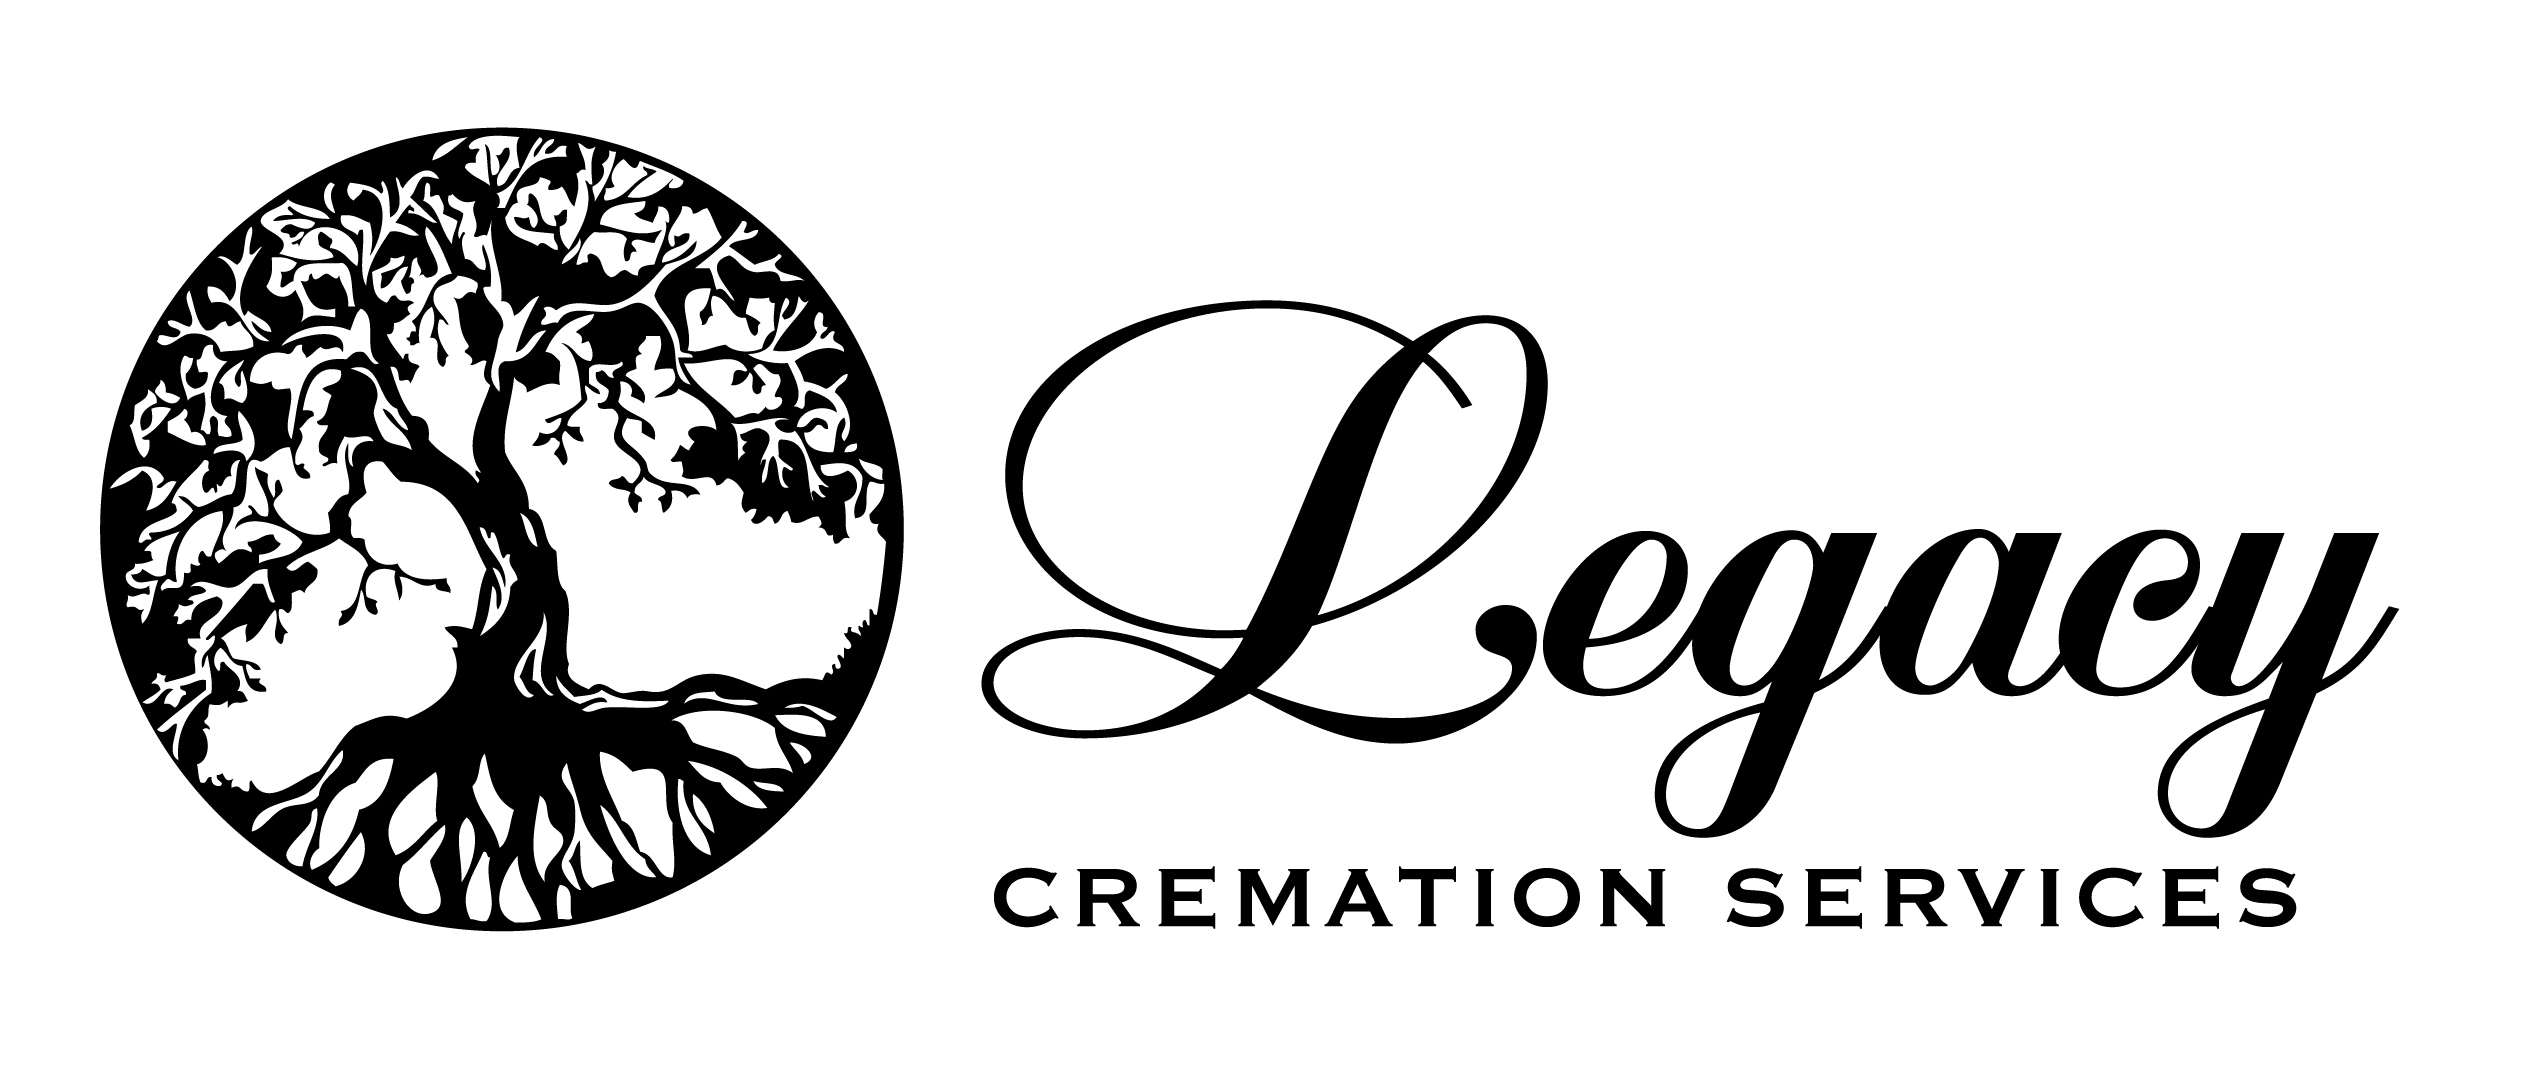 legacy-funeral-services-logo